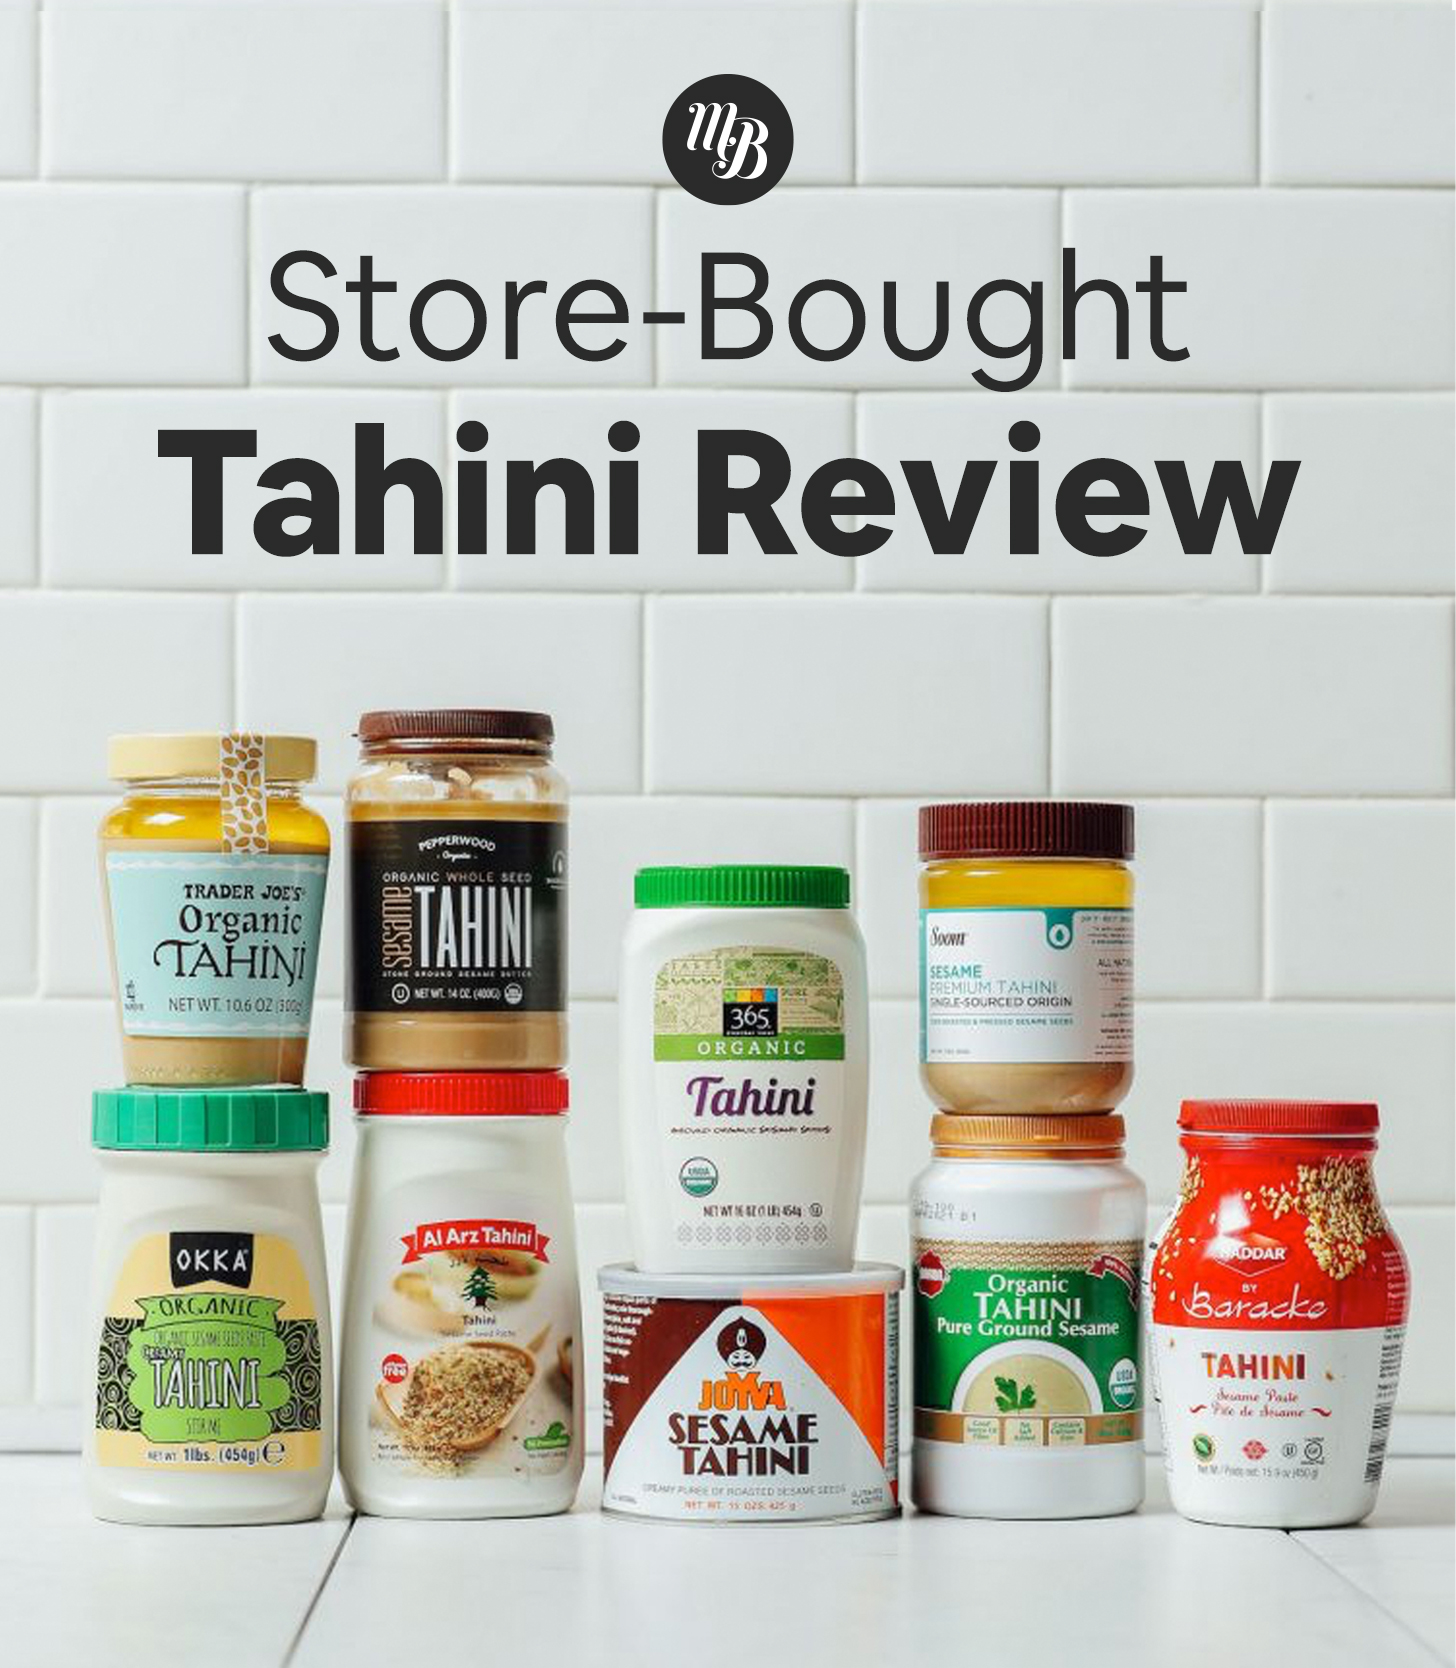 Jars of tahini with text on top saying saying Store-Bought Tahini Review